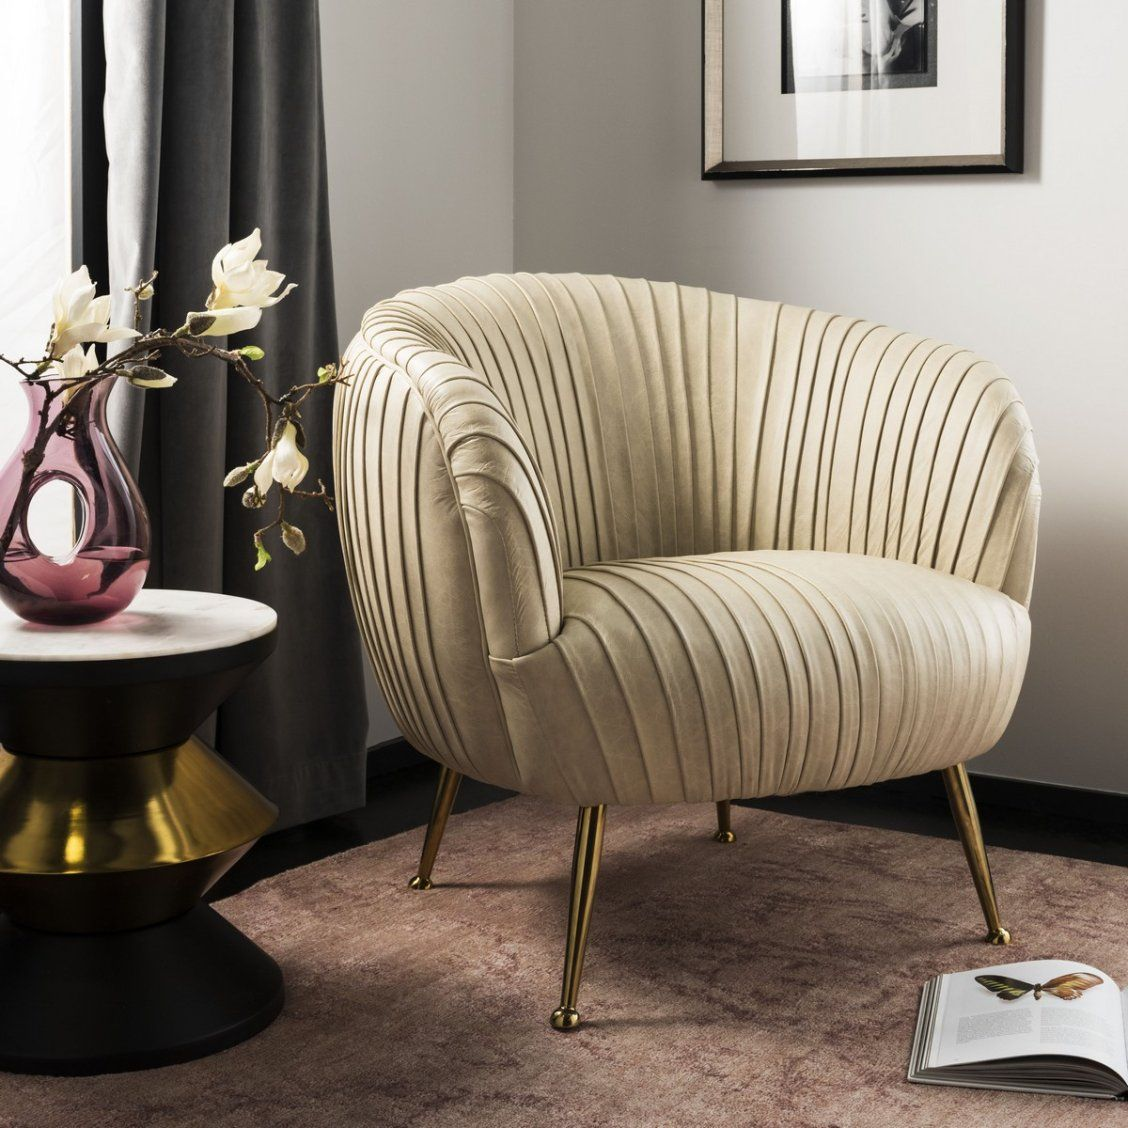 Groovy A Regal Statement Piece In Any Room This Accent Chair Is Forskolin Free Trial Chair Design Images Forskolin Free Trialorg